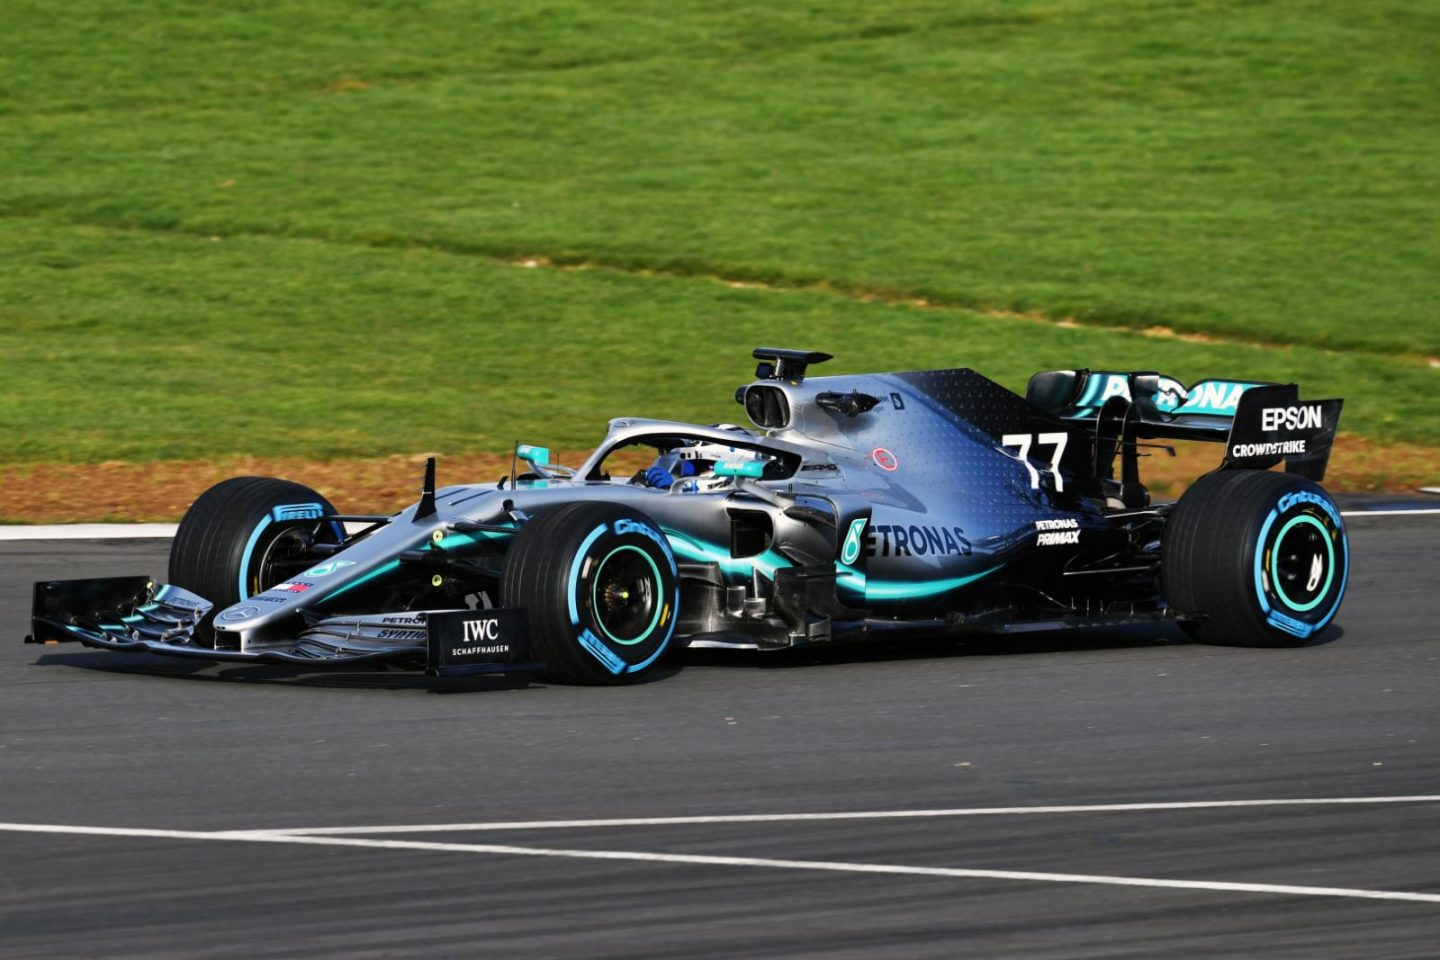 Mercedes Unveils 2019 F1 Car W10 (Featuring On-Track Images)